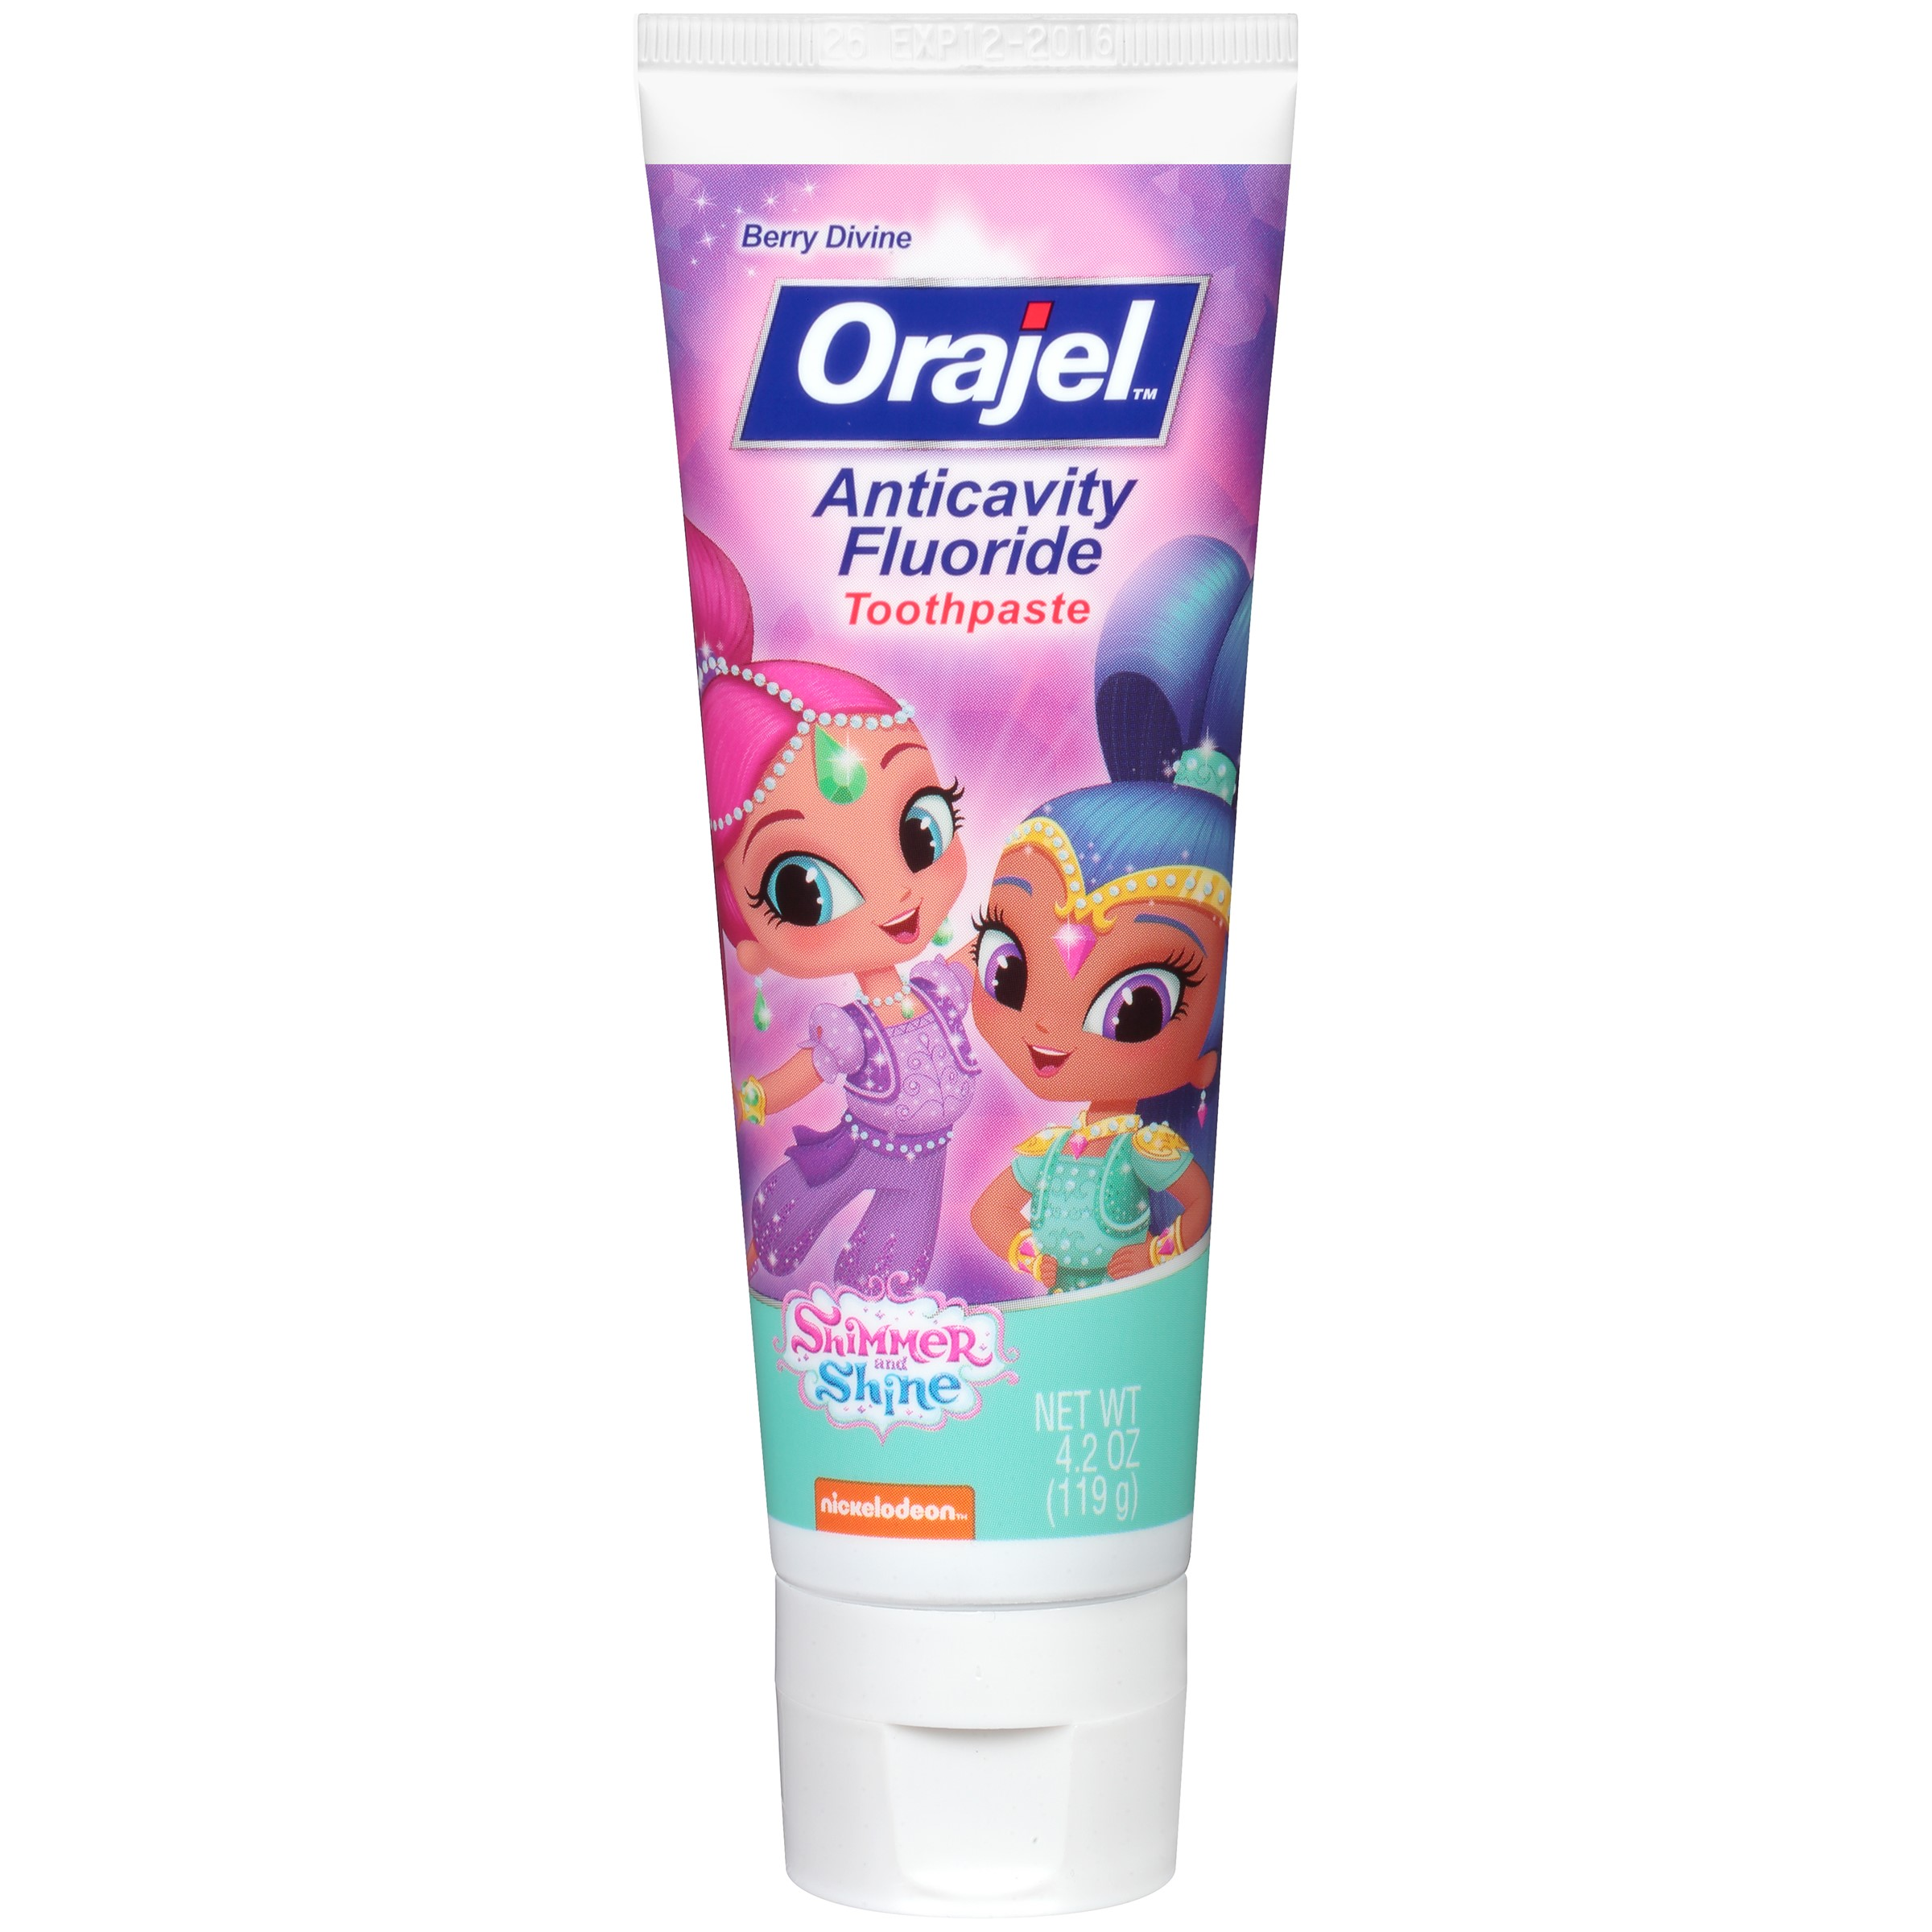 Orajel Shimmer and Shine Anticavity Fluoride Toothpaste, 4.2 oz.